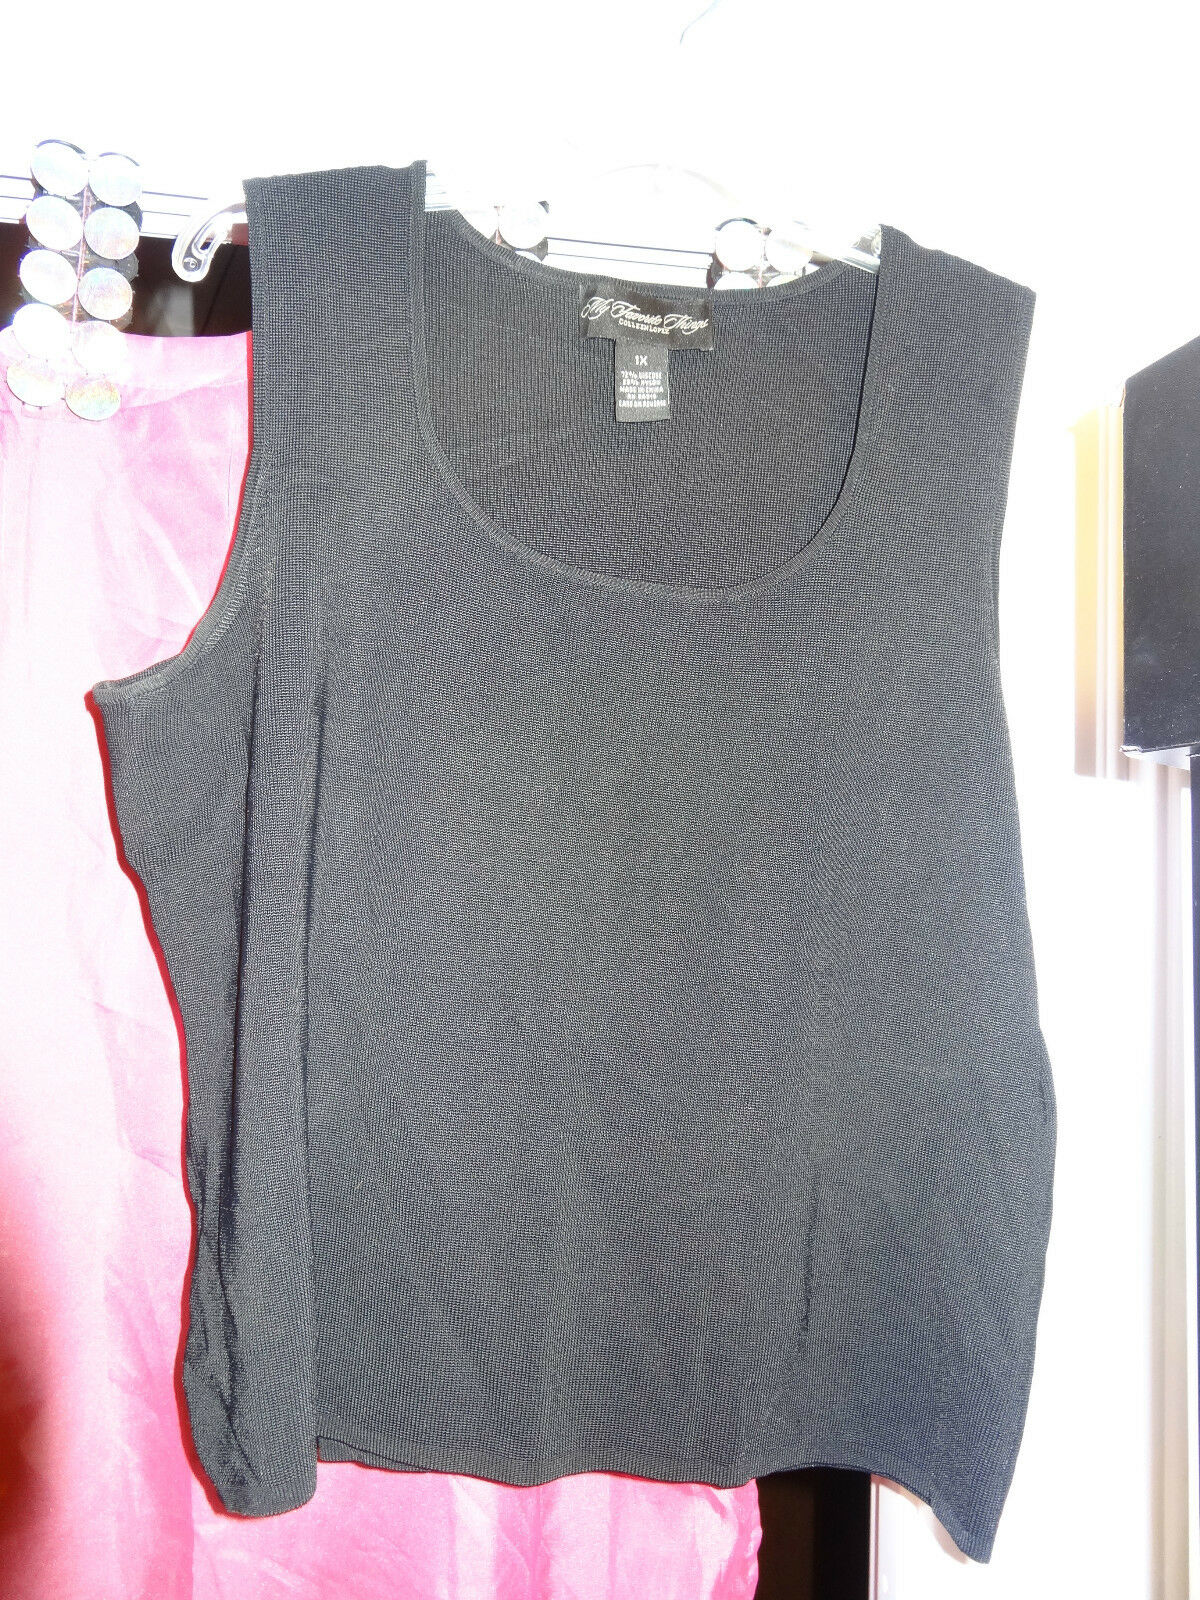 My Favorite Things Colleen Lopez schwarz Sleeveless Tank Top 1X NEW